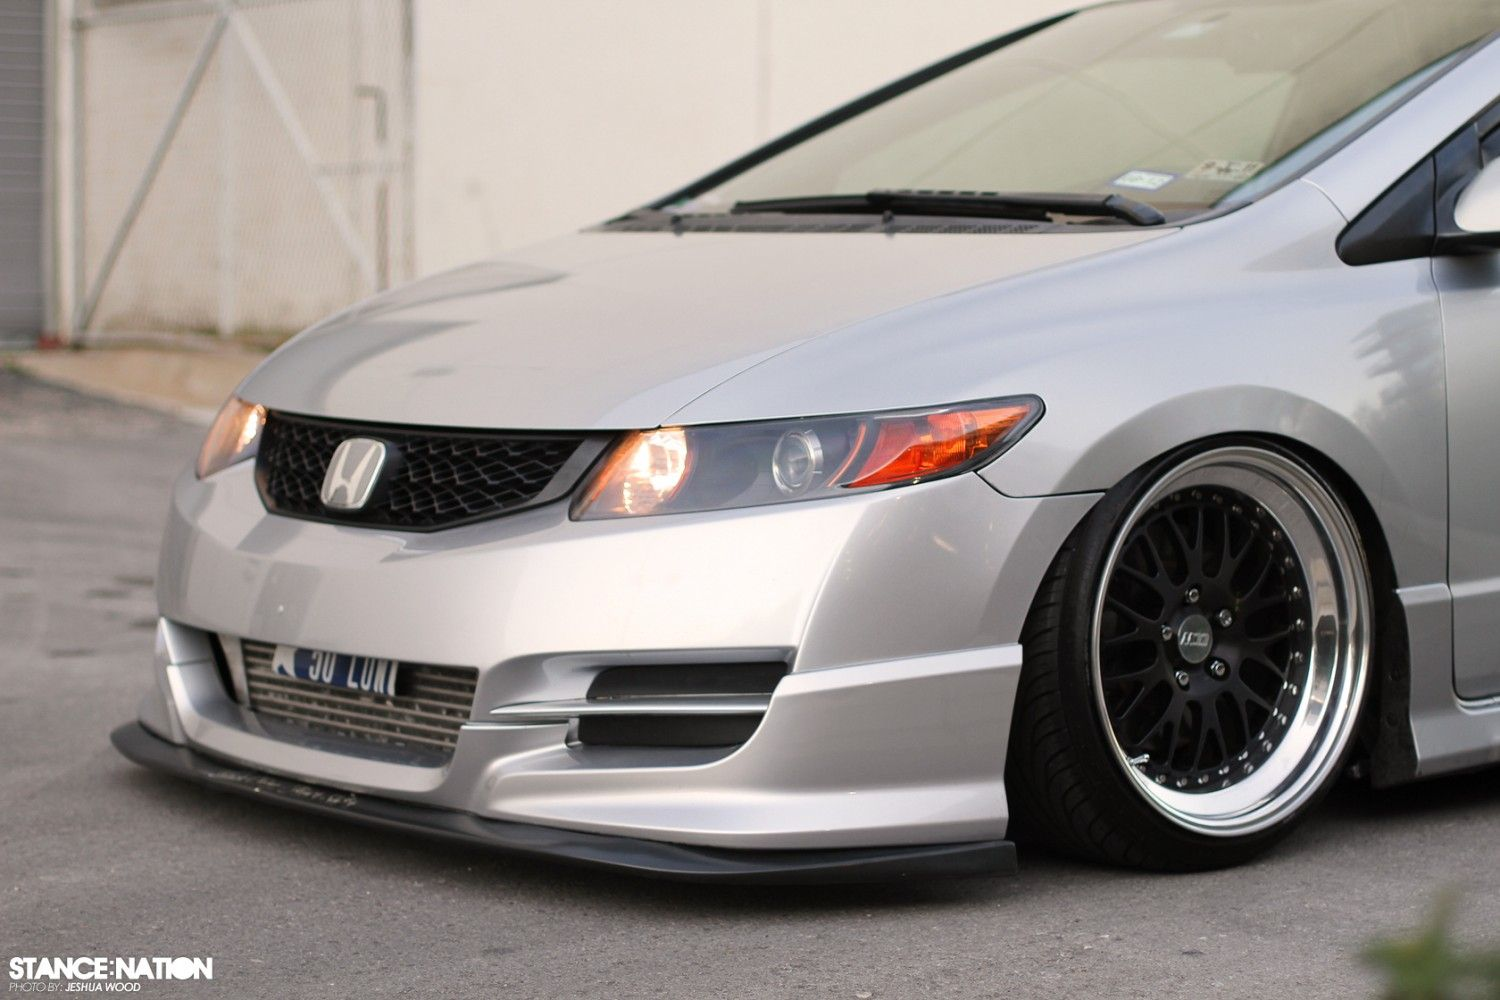 Slammed & Boosted. in 2020 Honda civic, Civic coupe, Civic